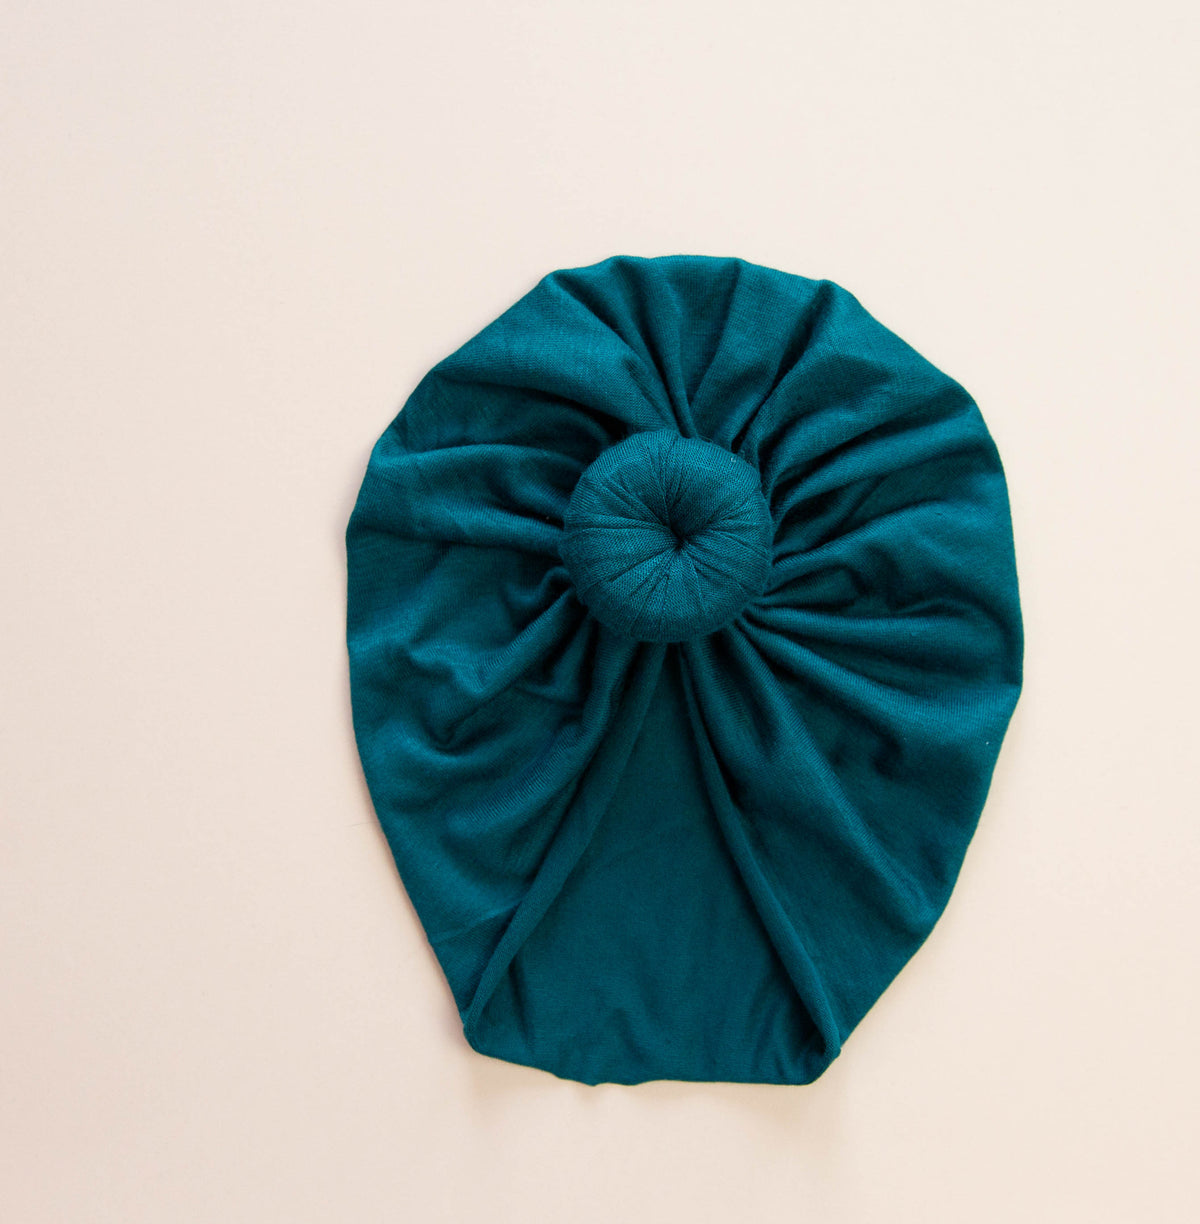 Peacock Headwrap Turban | Knit Headwrap